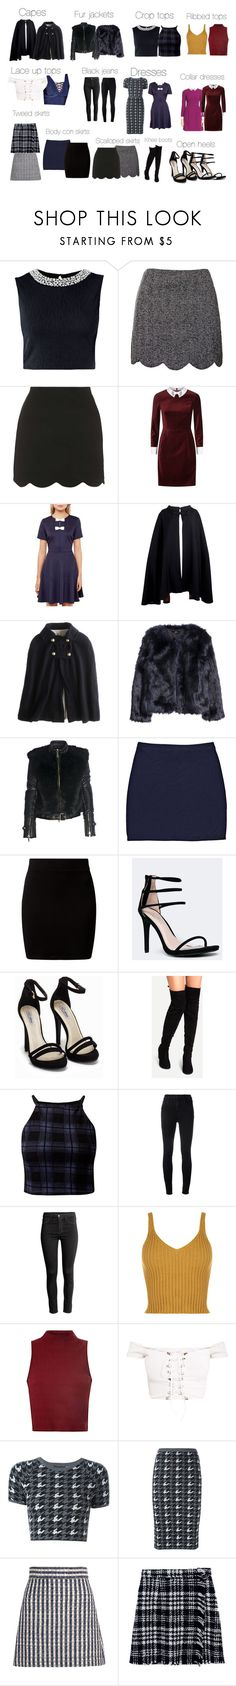 """Veronica Lodge basics - Riverdale"" by shadyannon ❤ liked on Polyvore featuring Topshop, Ted Baker, Pierre Cardin, Local Celebrity, H&M, FRACOMINA, Boohoo, New Look, Anne Michelle and Nly Shoes"